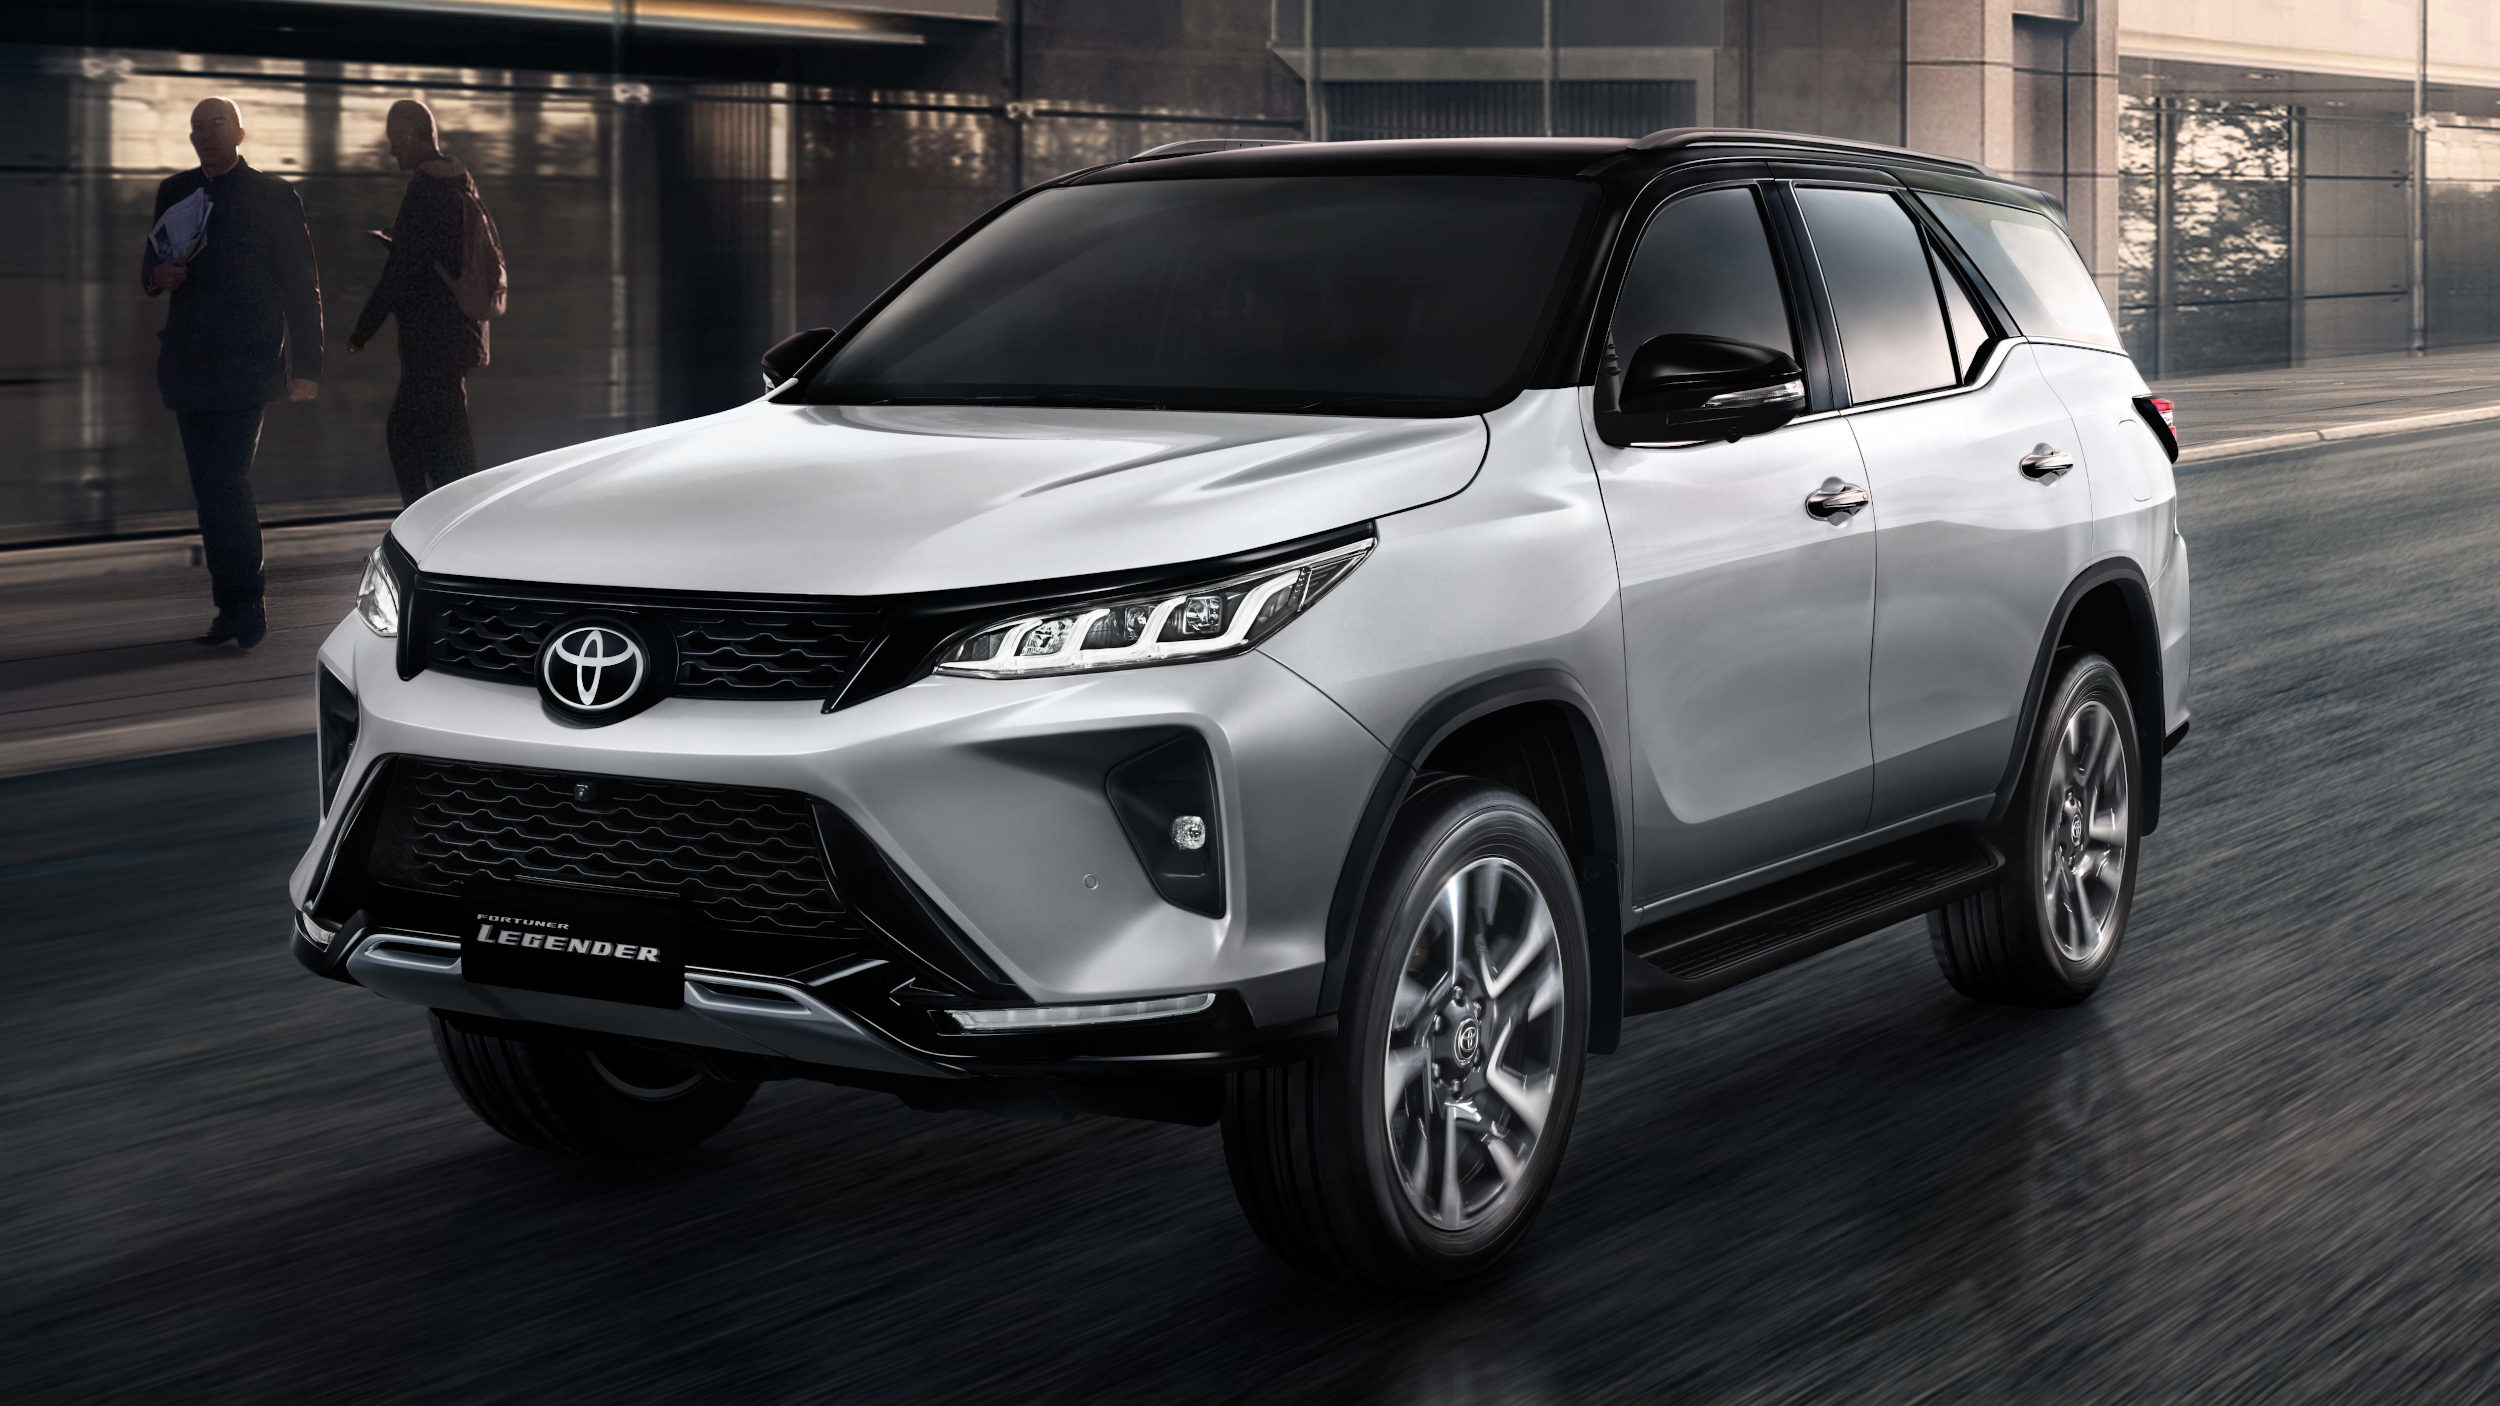 Car News 4: Toyota Fortuner prices, Isuzu D-Max 4 arrival